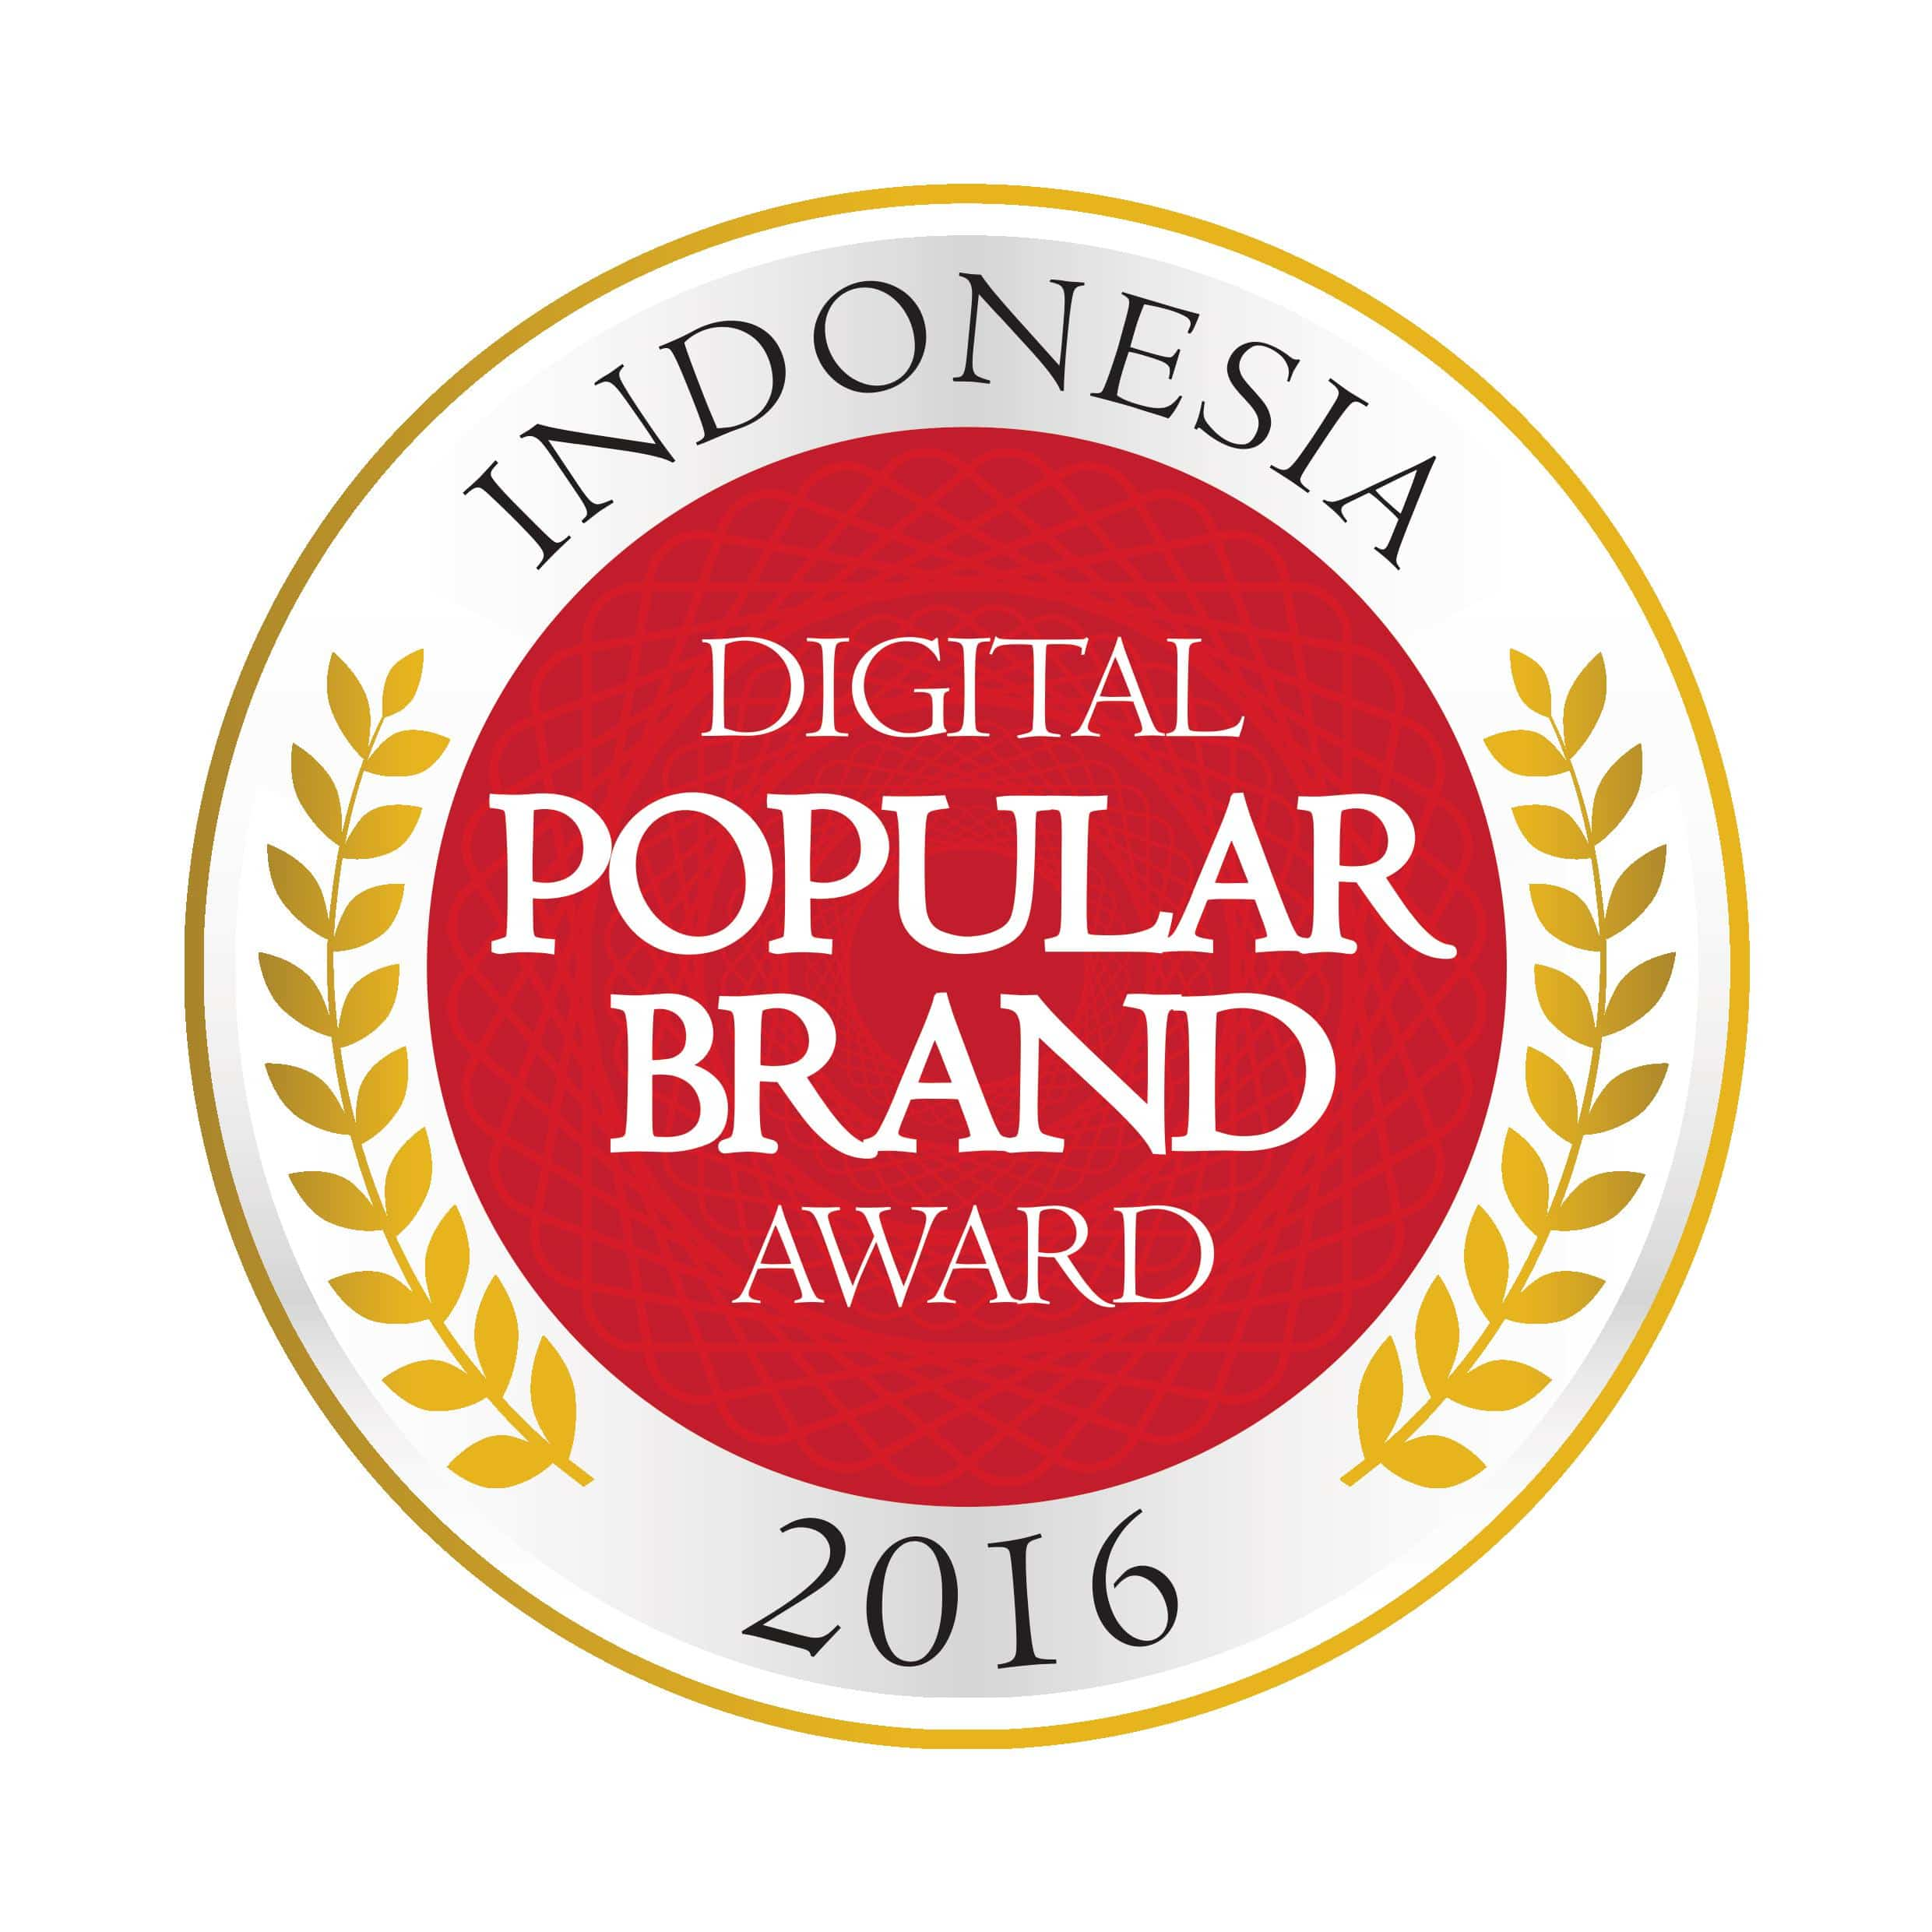 INDONESIA DIGITAL POPULAR BRAND AWARD 2016